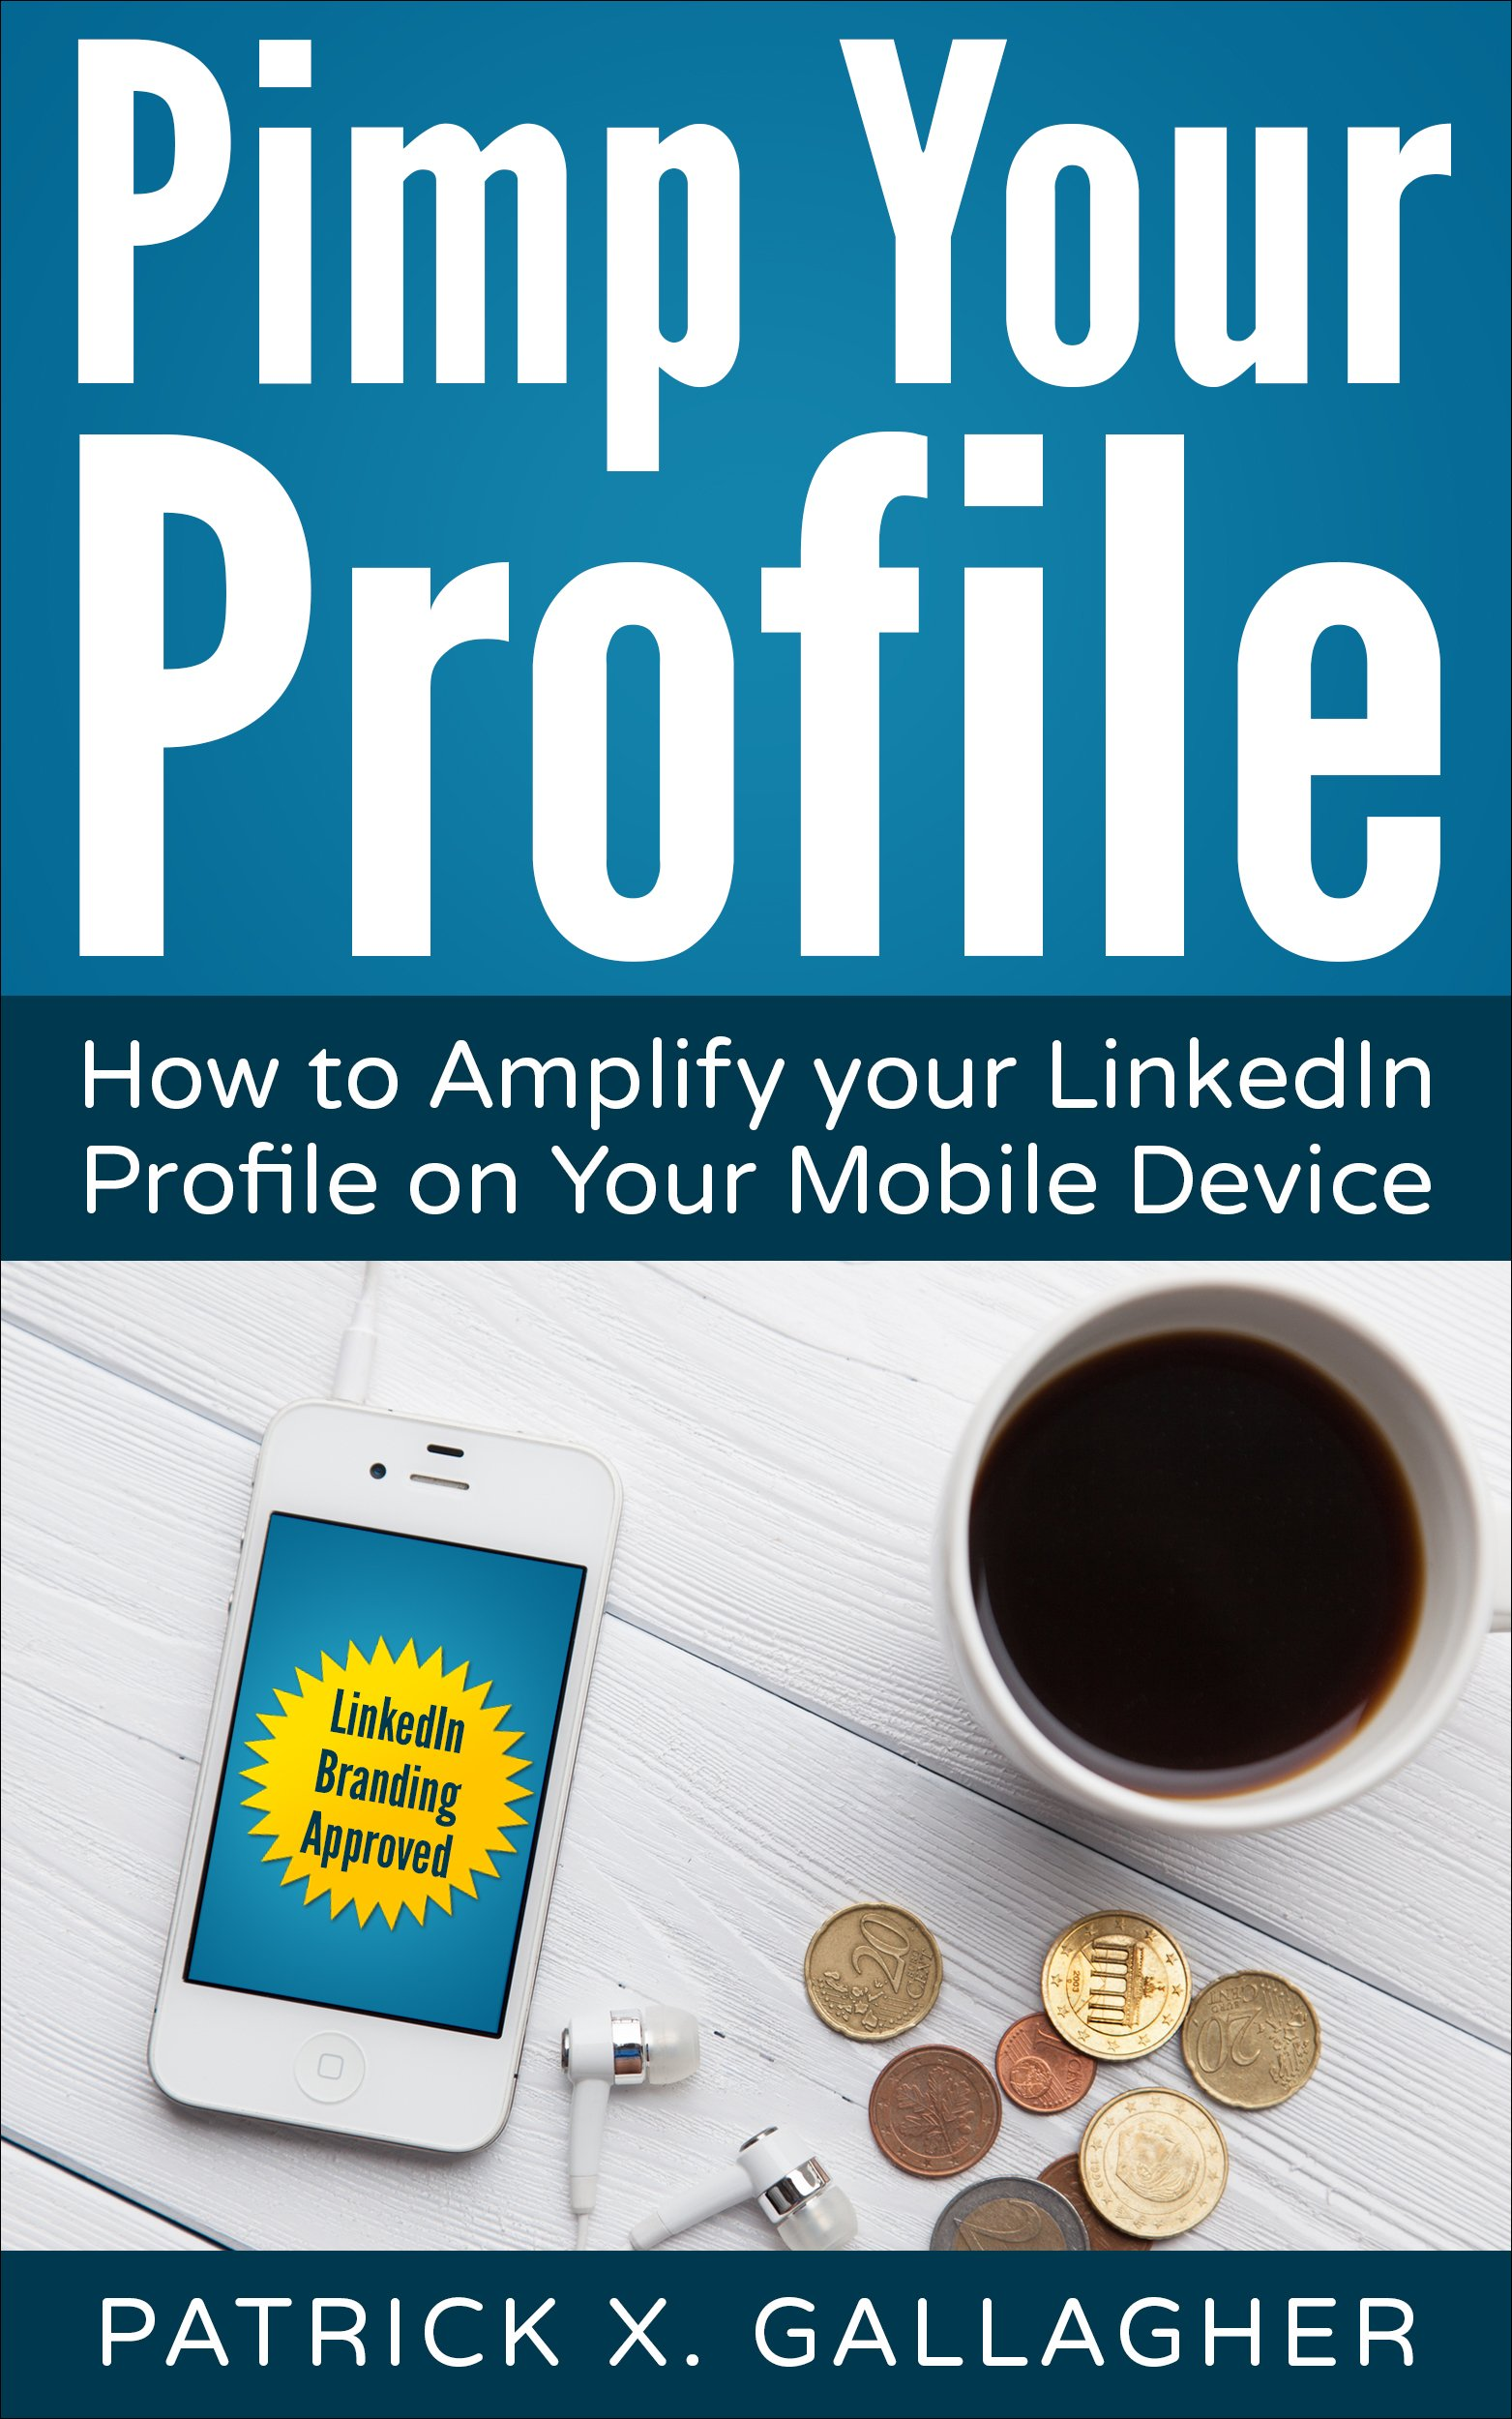 Pimp Your Profile: How to Amplify your LinkedIn Profile on your Mobile Device